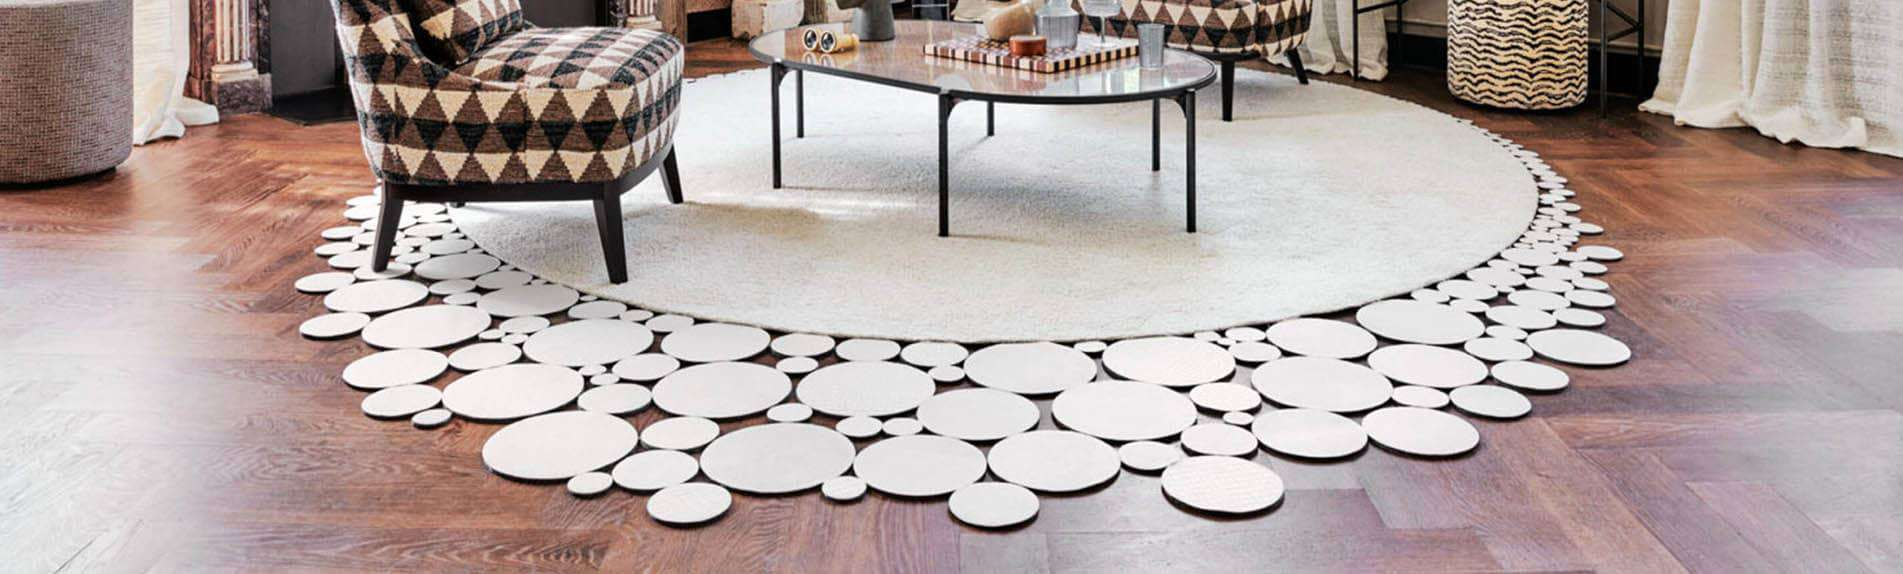 SLIDER Floor Jewels Flawless - rond vloerkleed - wit - een design vloerkleed door Roelfien Vos en Van Besouw - boho chic - woontrends 2021 - interieur trend 2021